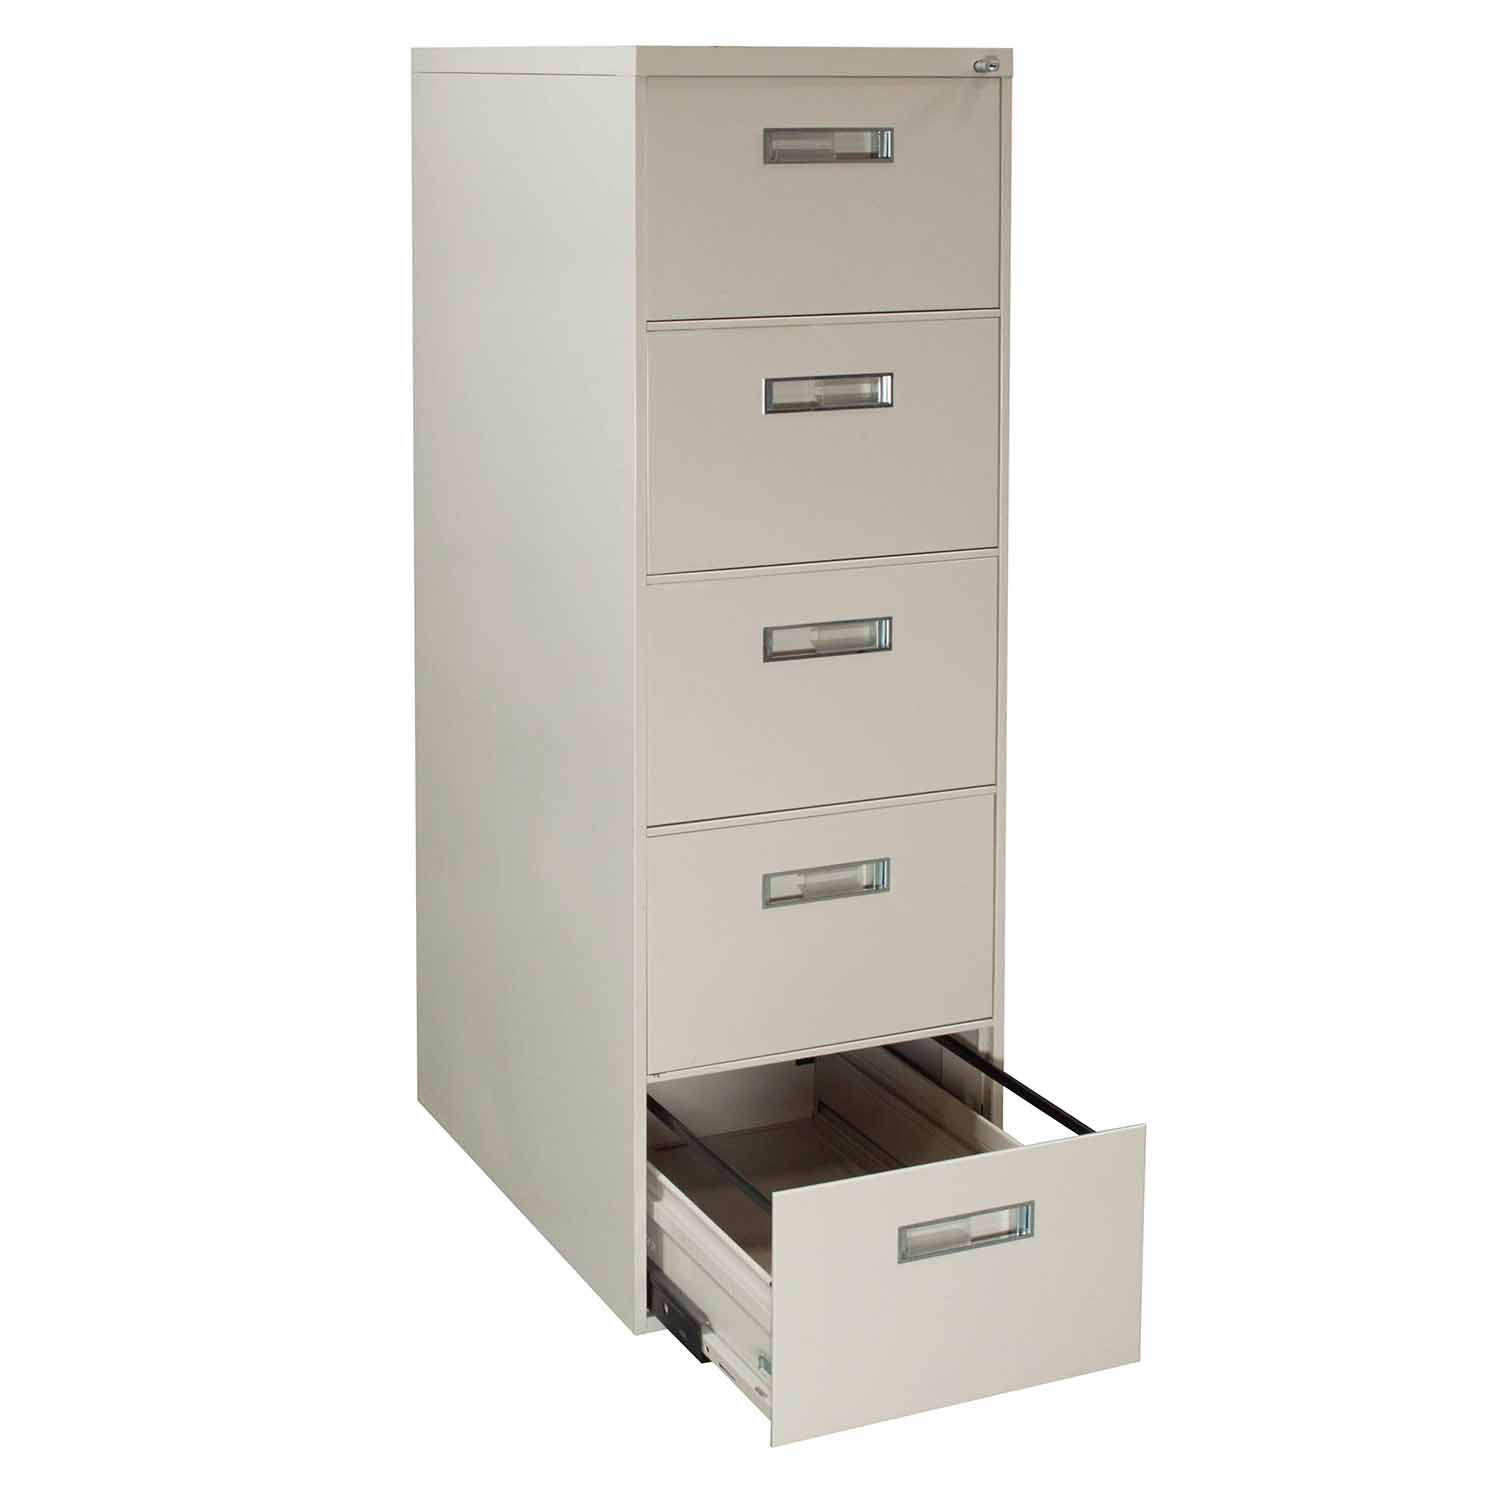 Steelcase Used 5 Drawer Vertical File Cabinet Legal Size